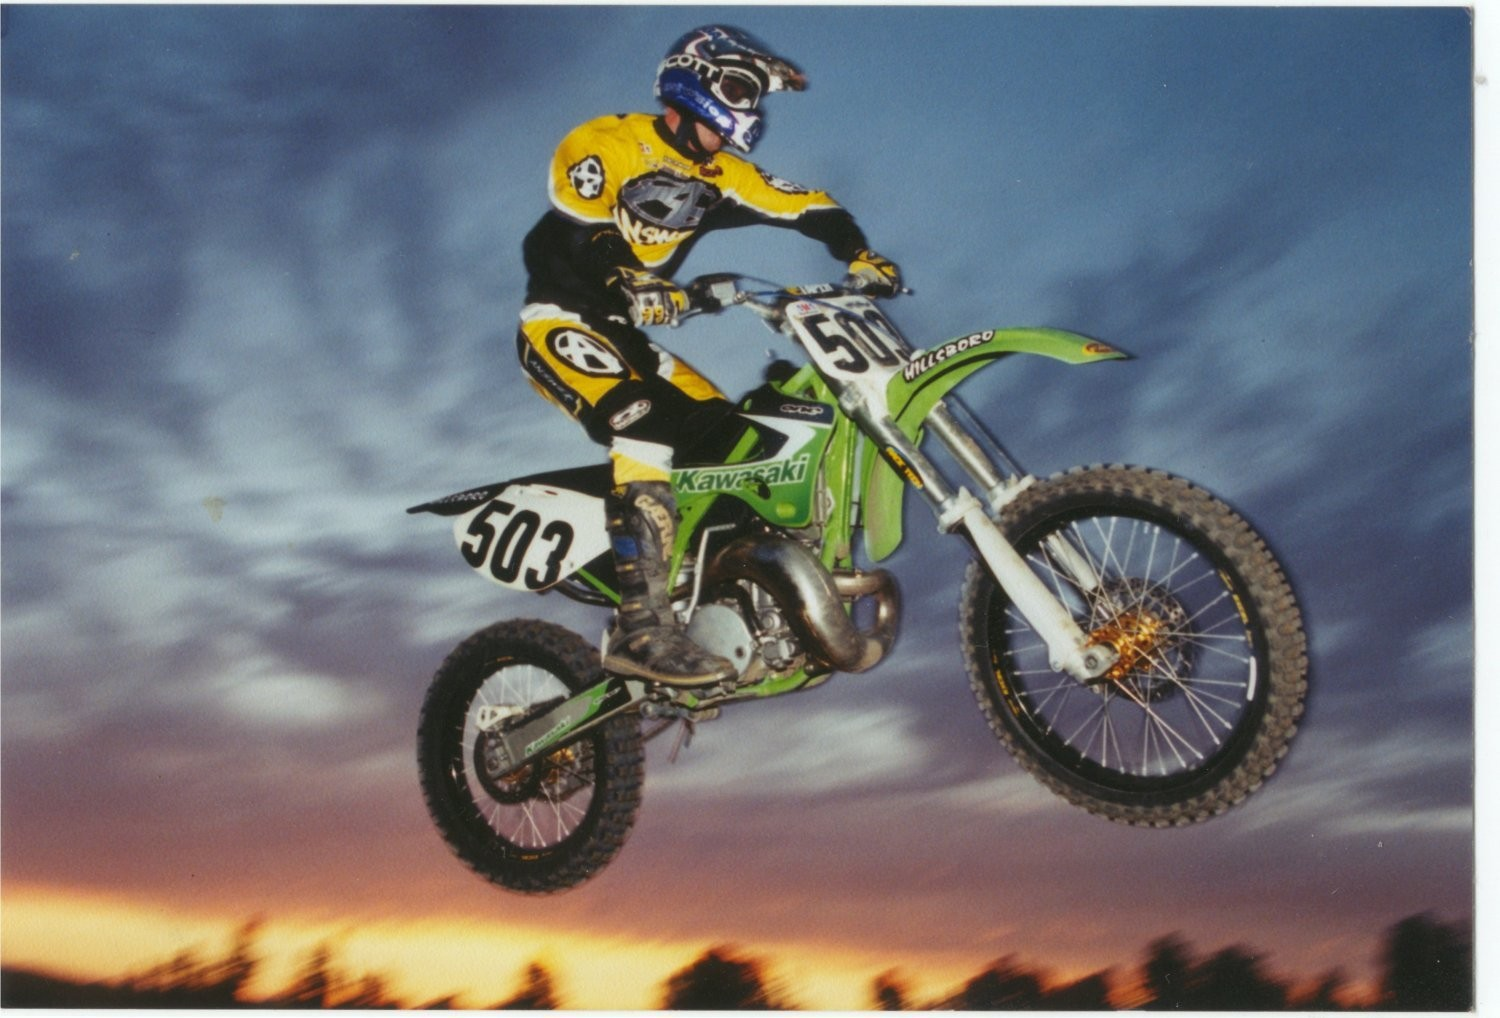 Jeff at P I R - jeffro503 - Motocross Pictures - Vital MX